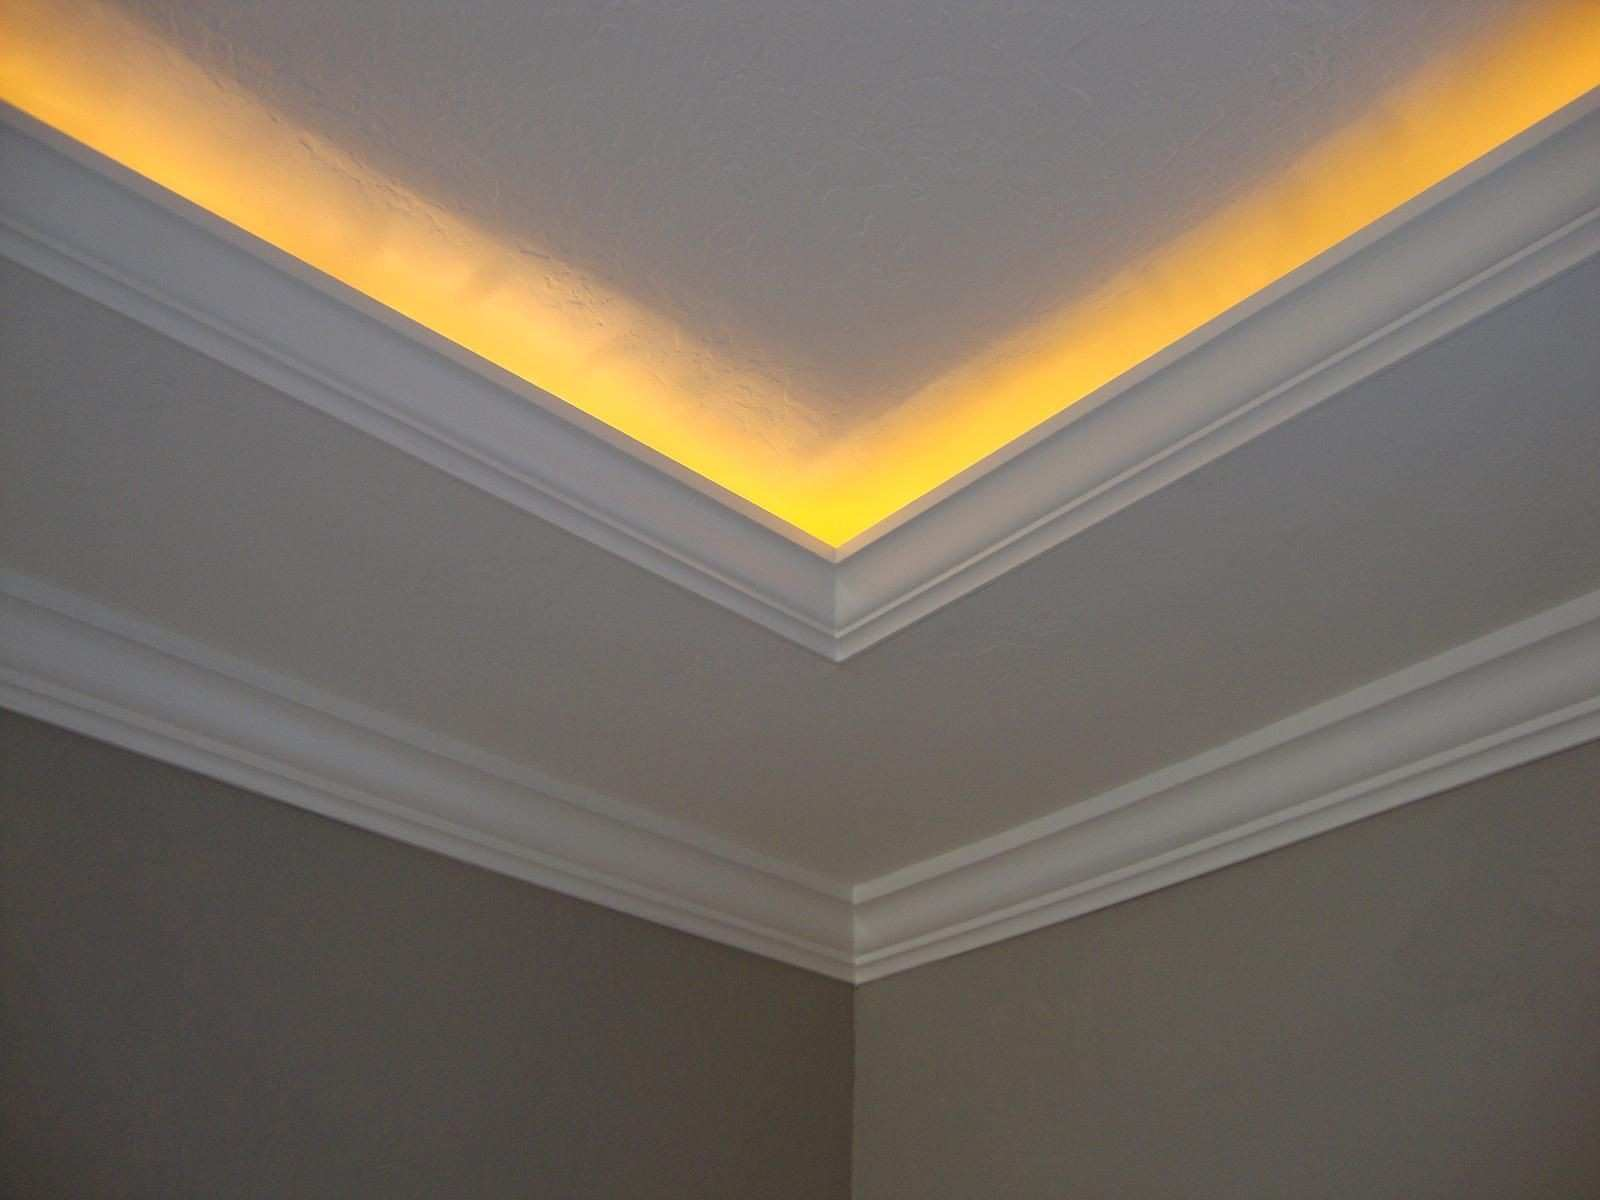 Crown molding with rope lights Going to do this next time I redo